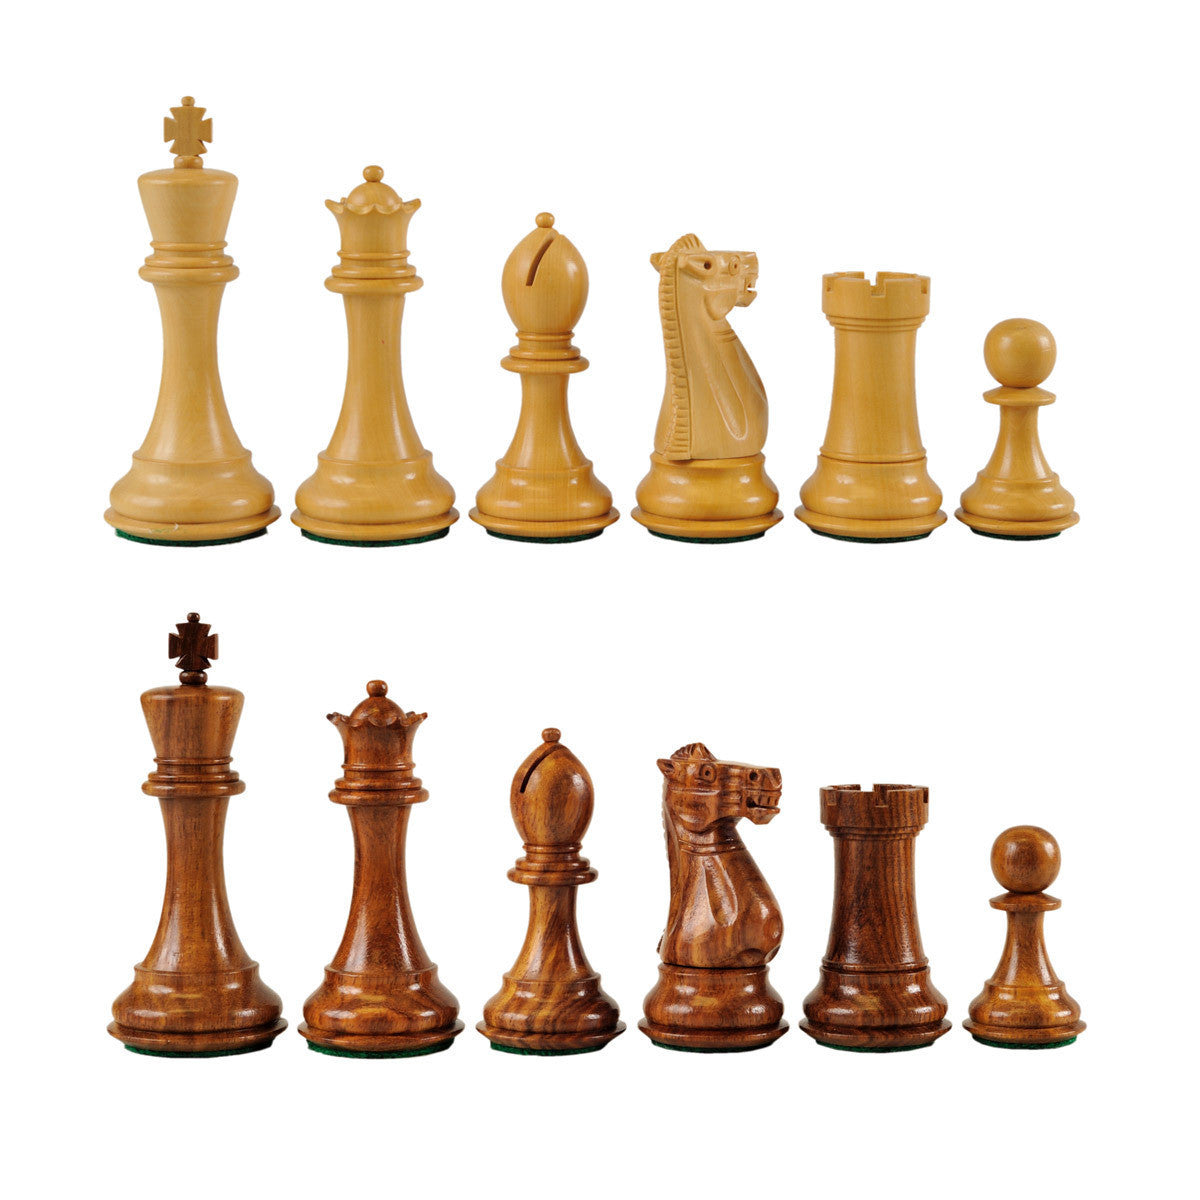 St. Petersburg Wooden Chess Pieces